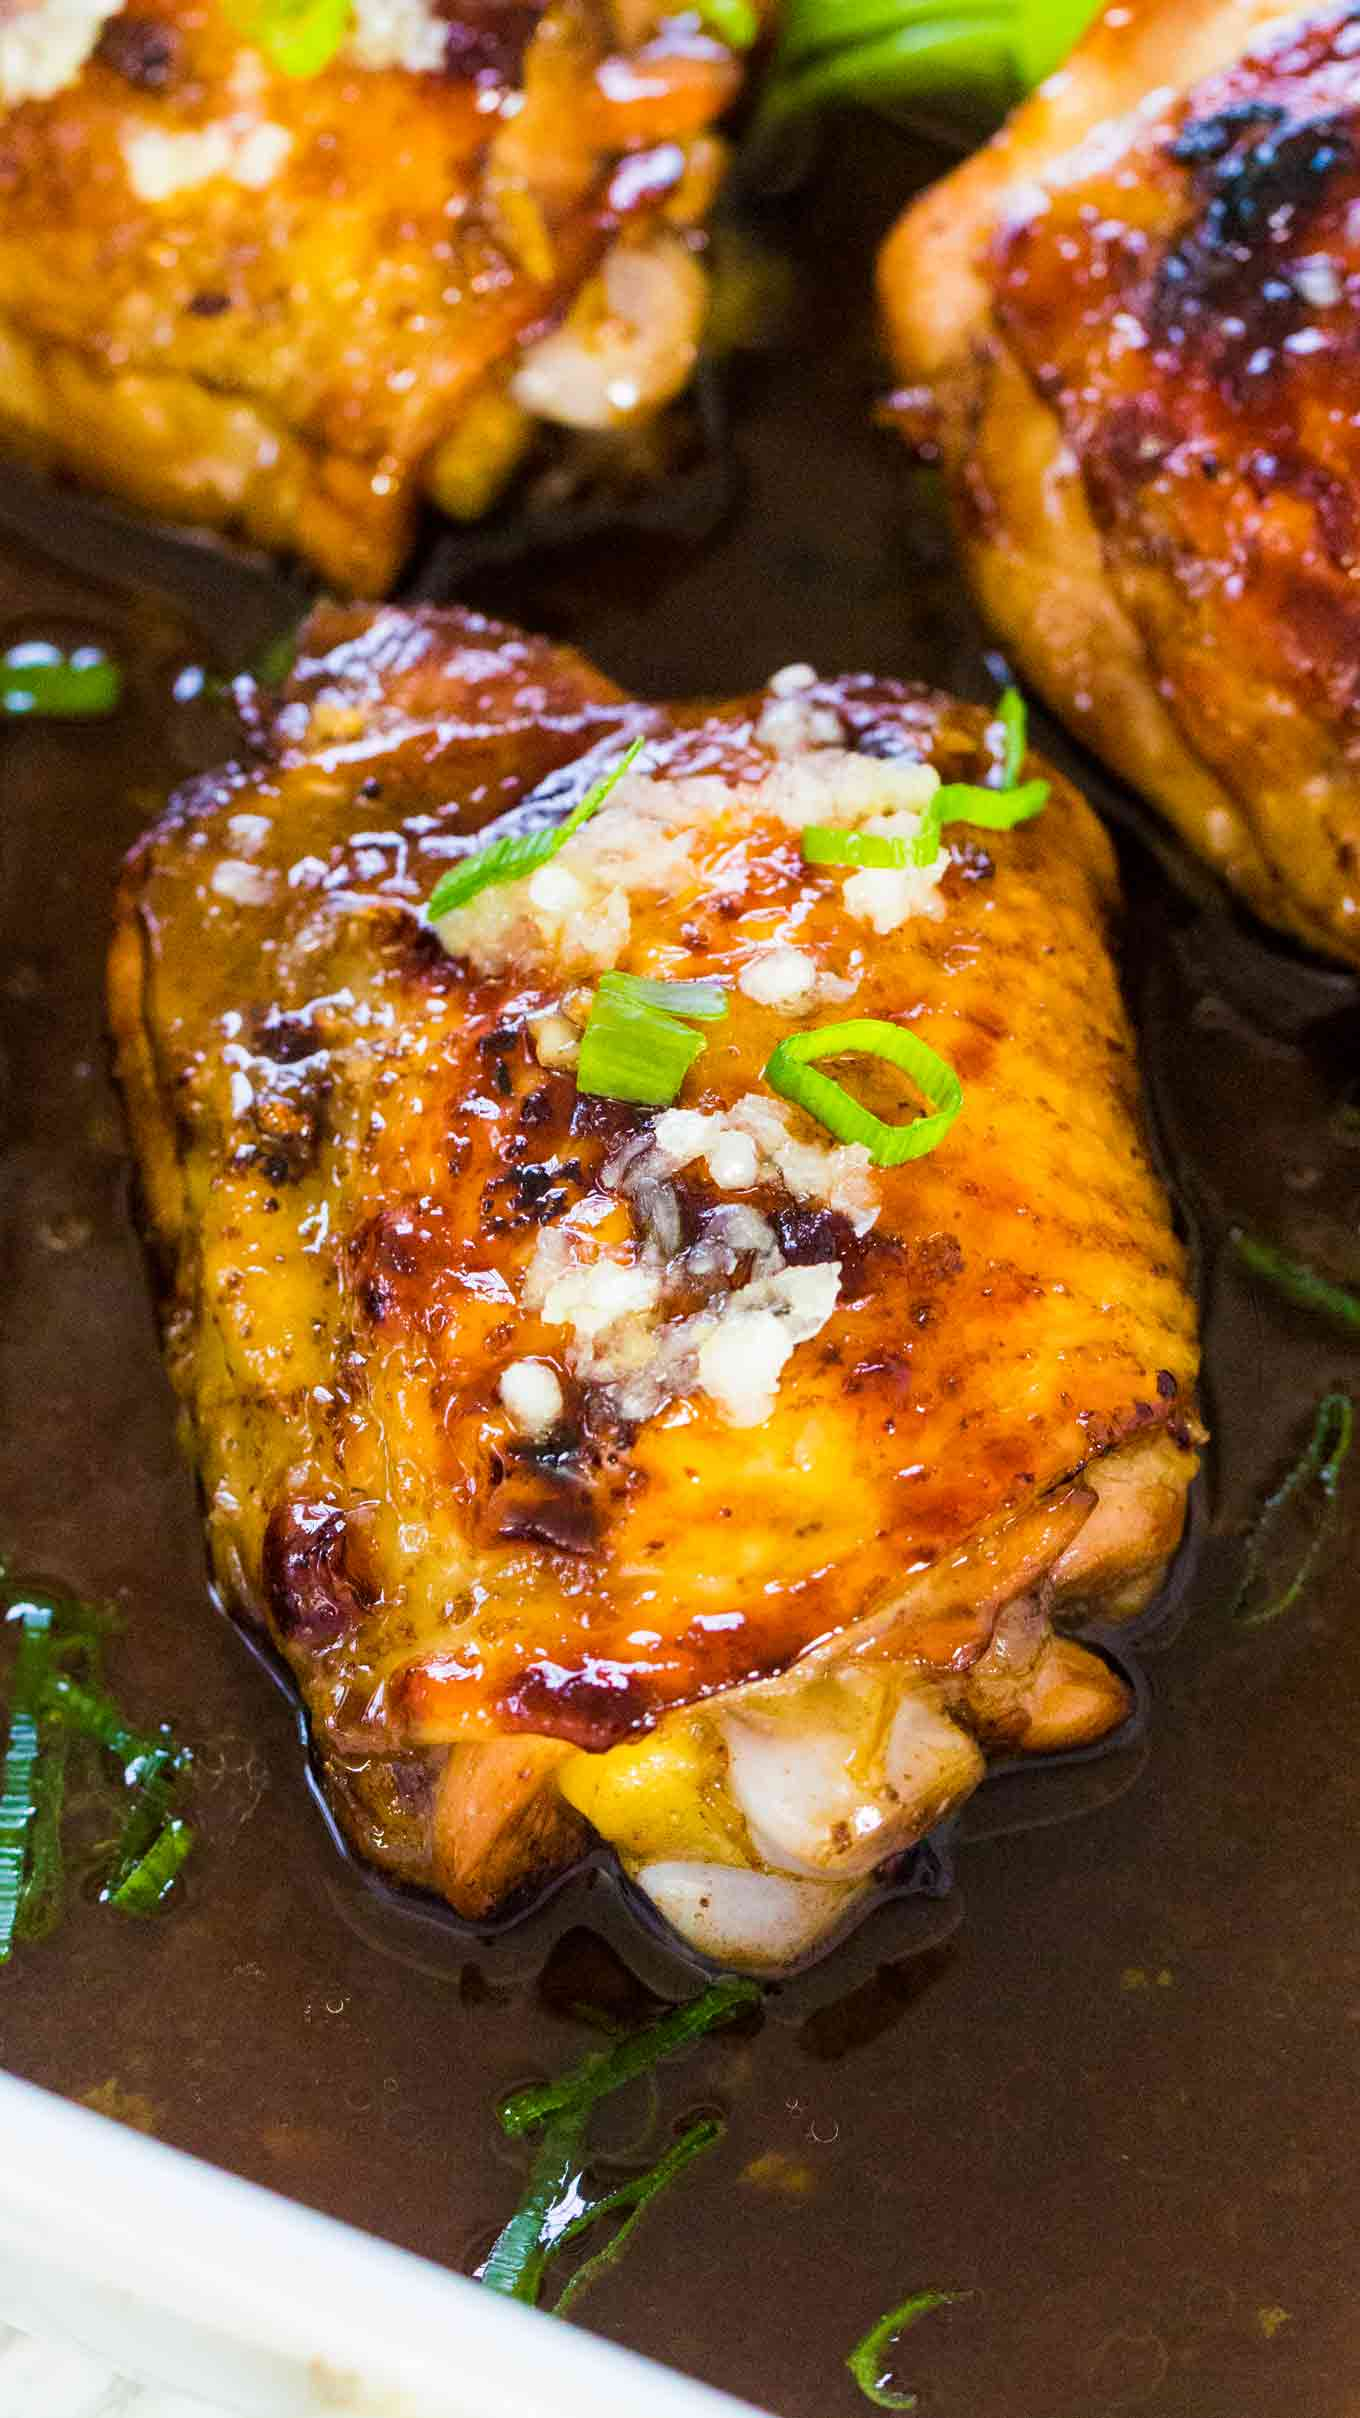 Honey balsamic glazed chicken